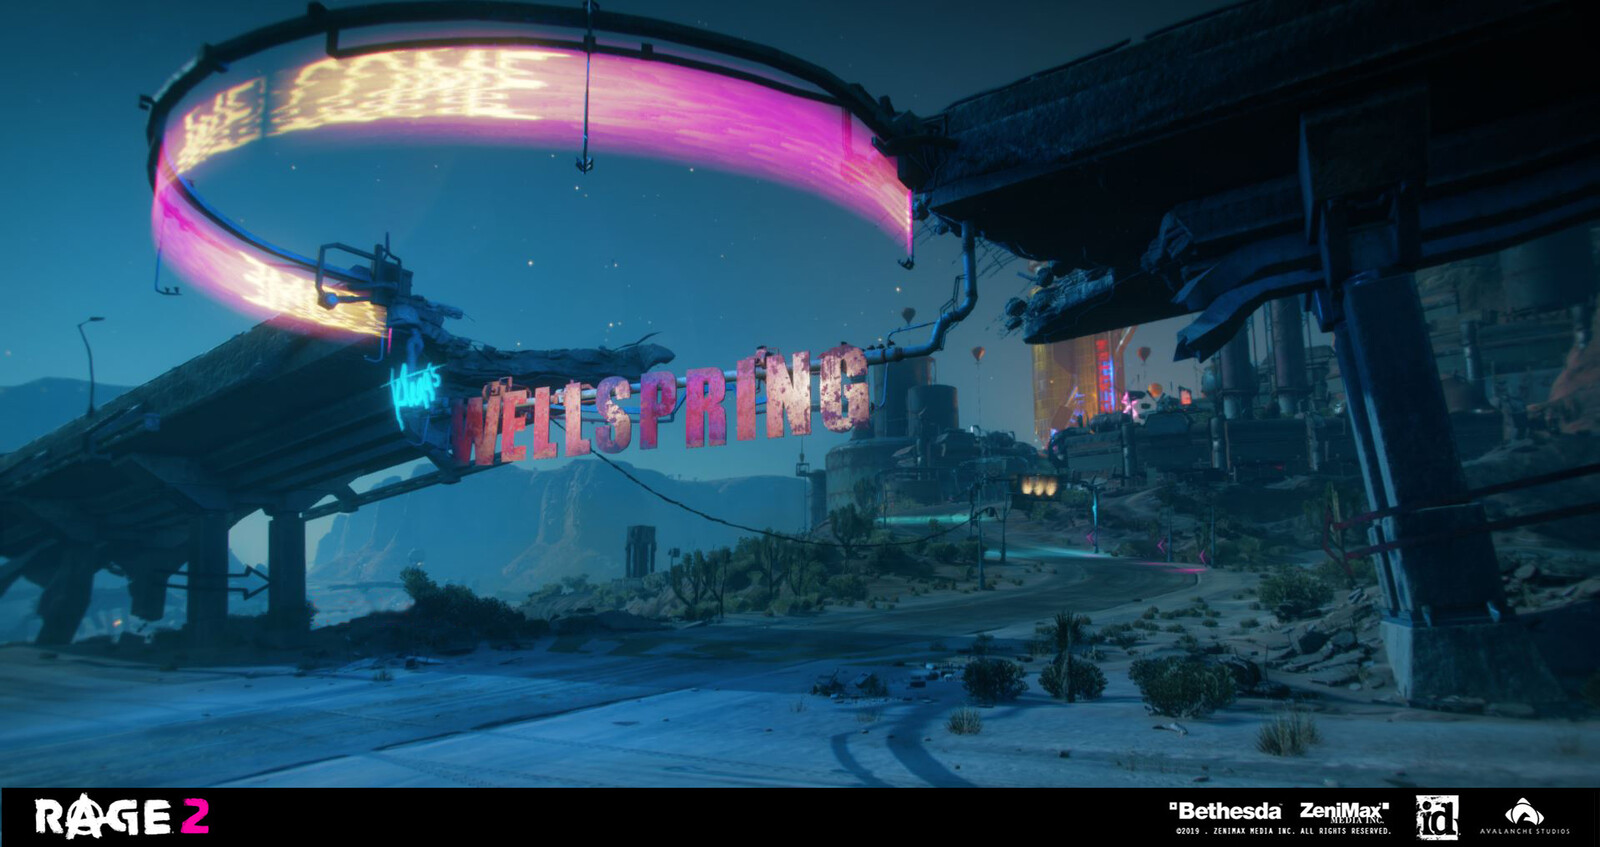 Entrance to Wellspring. I made the half-circular sign and the letters, as well as propping the entrance road leading up to the city gate. Lighting artist Christoffer Ågren made the hologram letters.